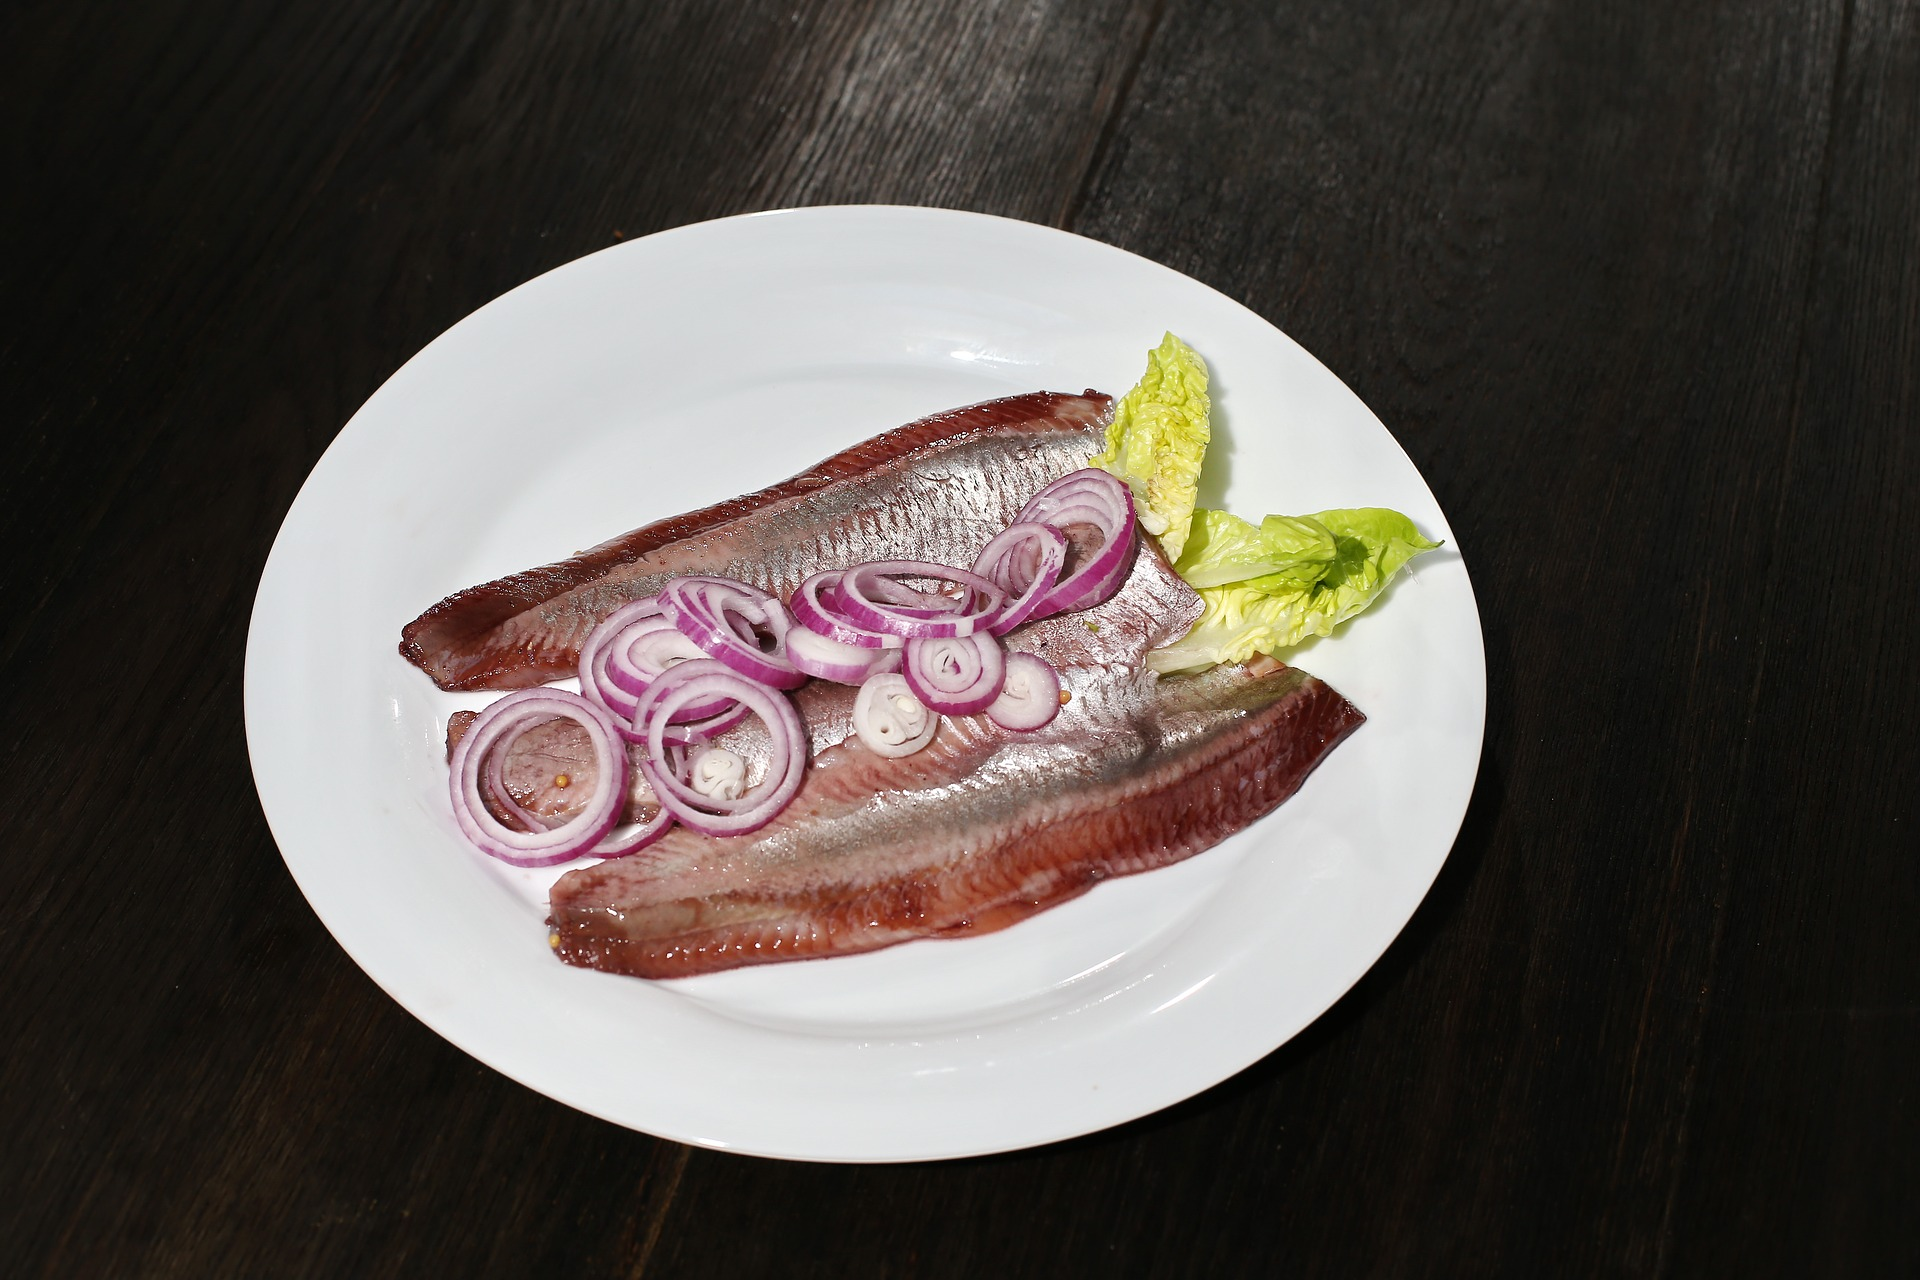 Pickled Herring is a popular New Year's Eve food idea - Credit: Pixabay